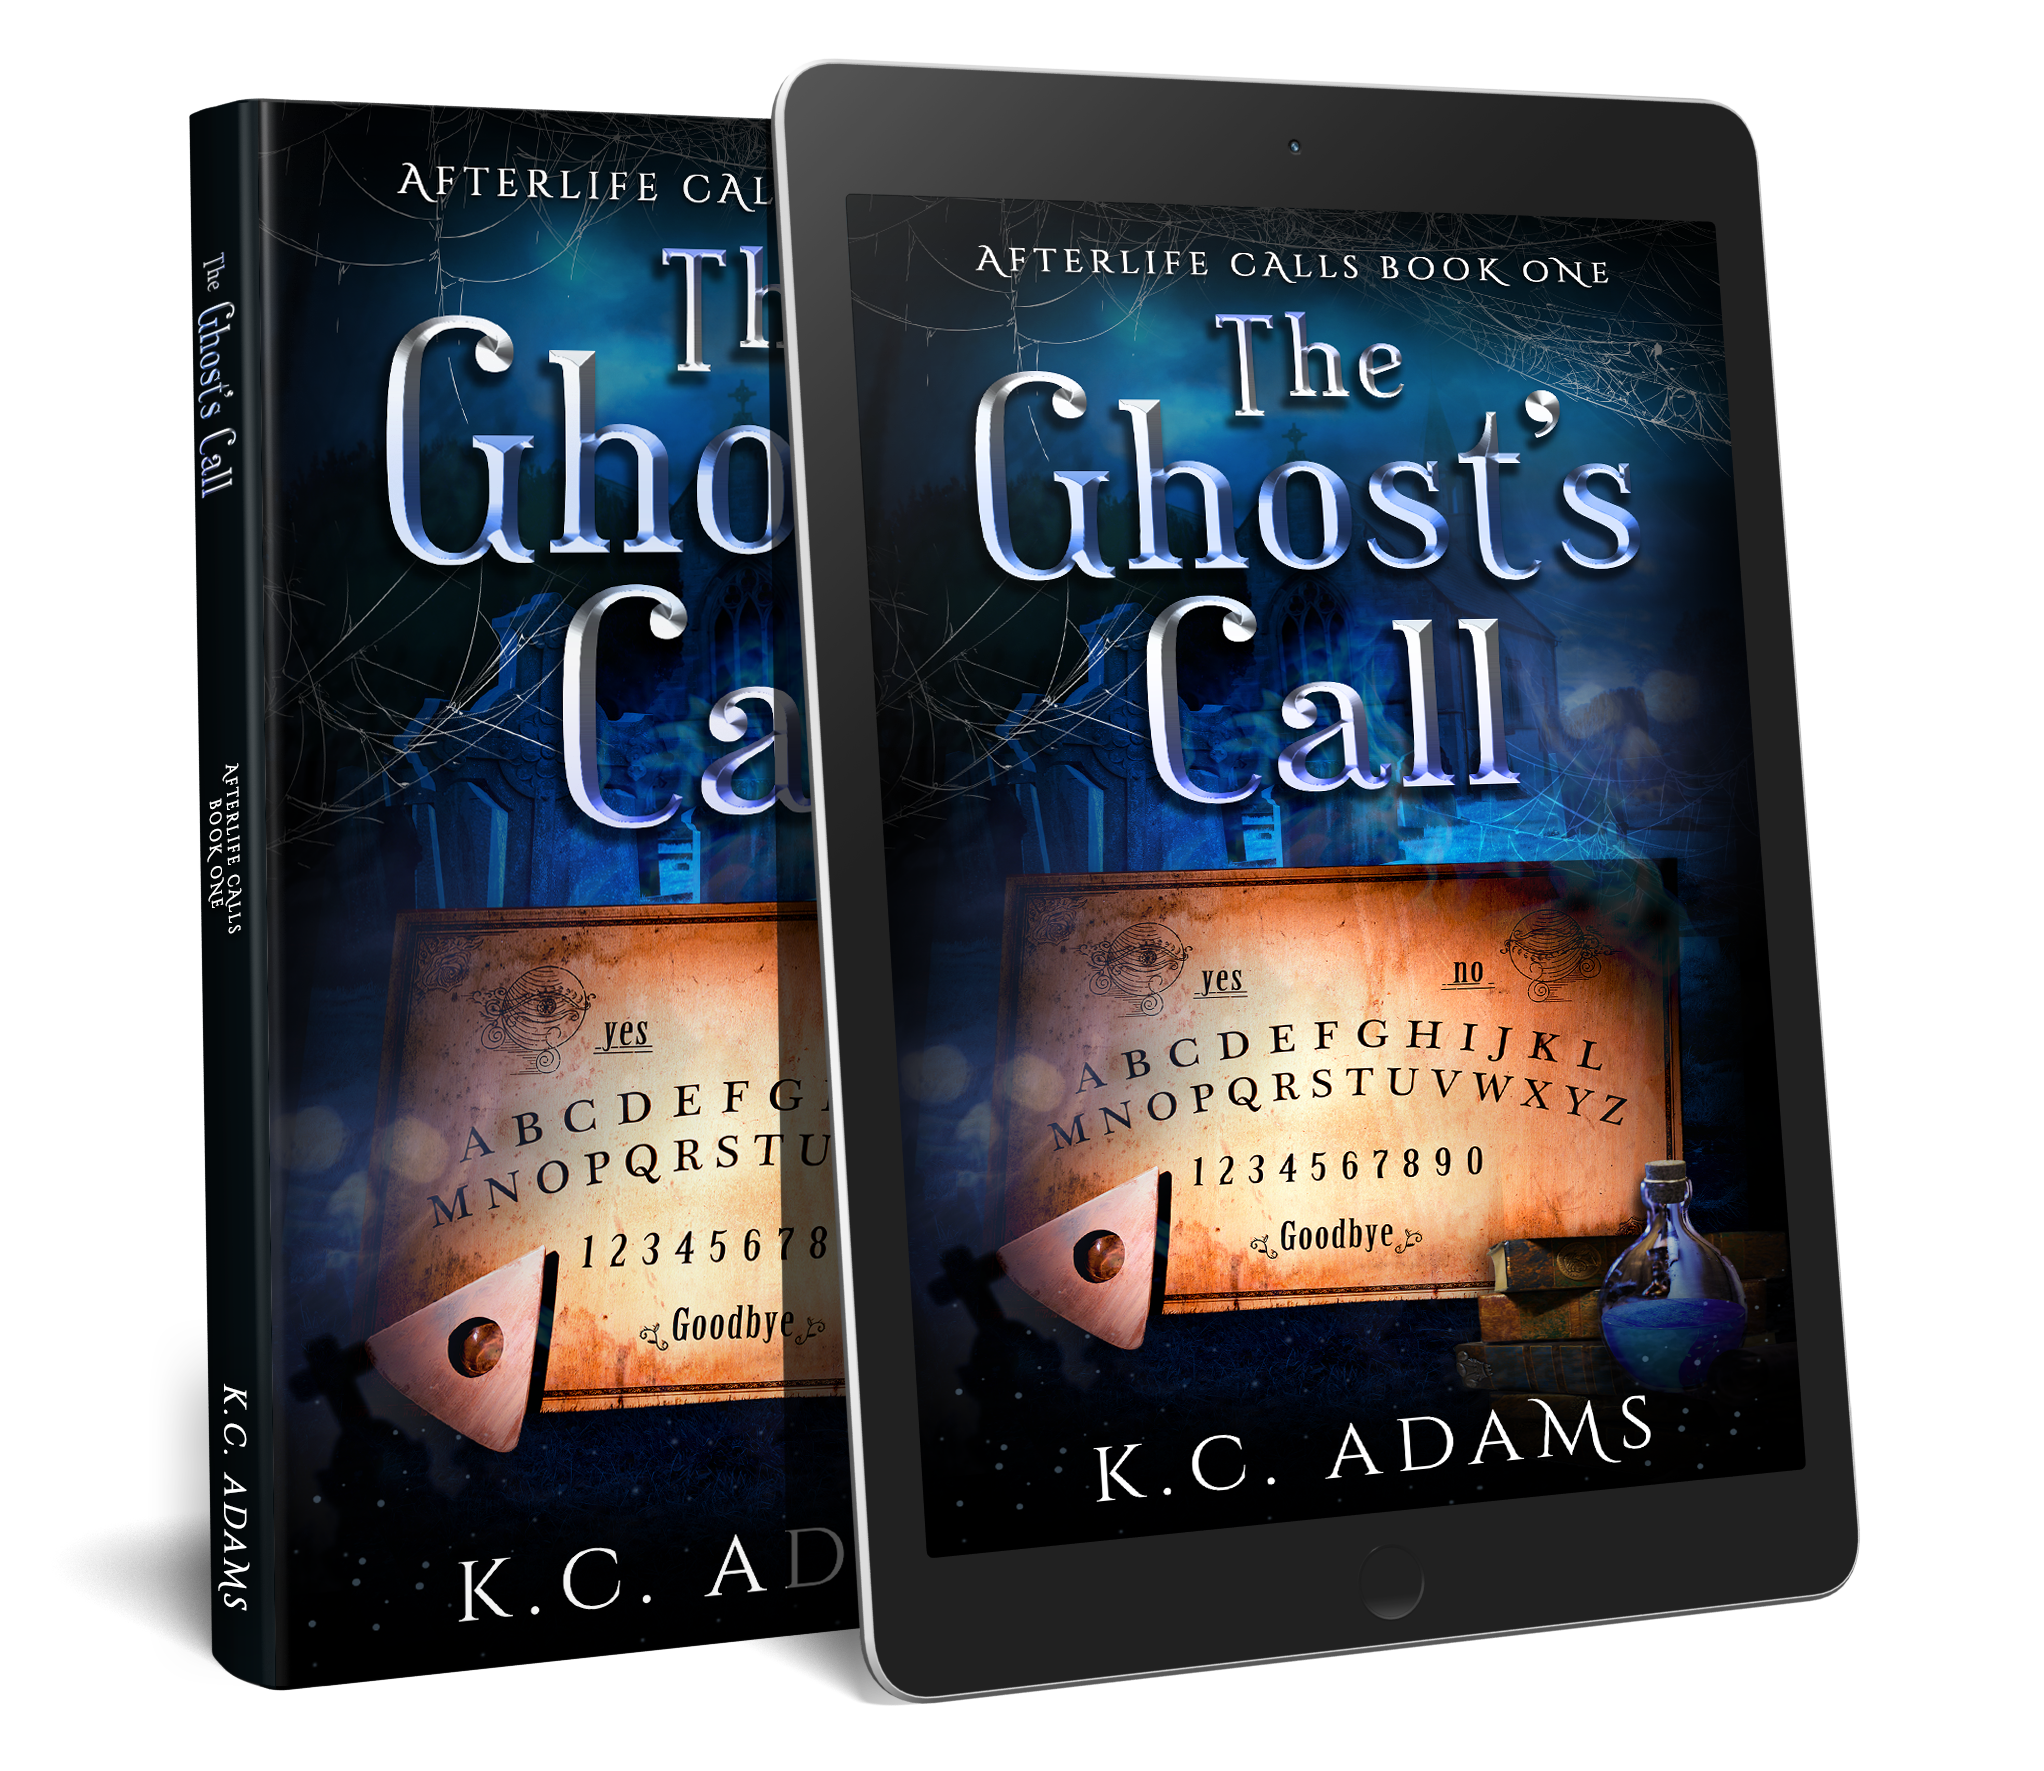 The Ghost's Call - Afterlife Calls Book 1 by K.C.Adams